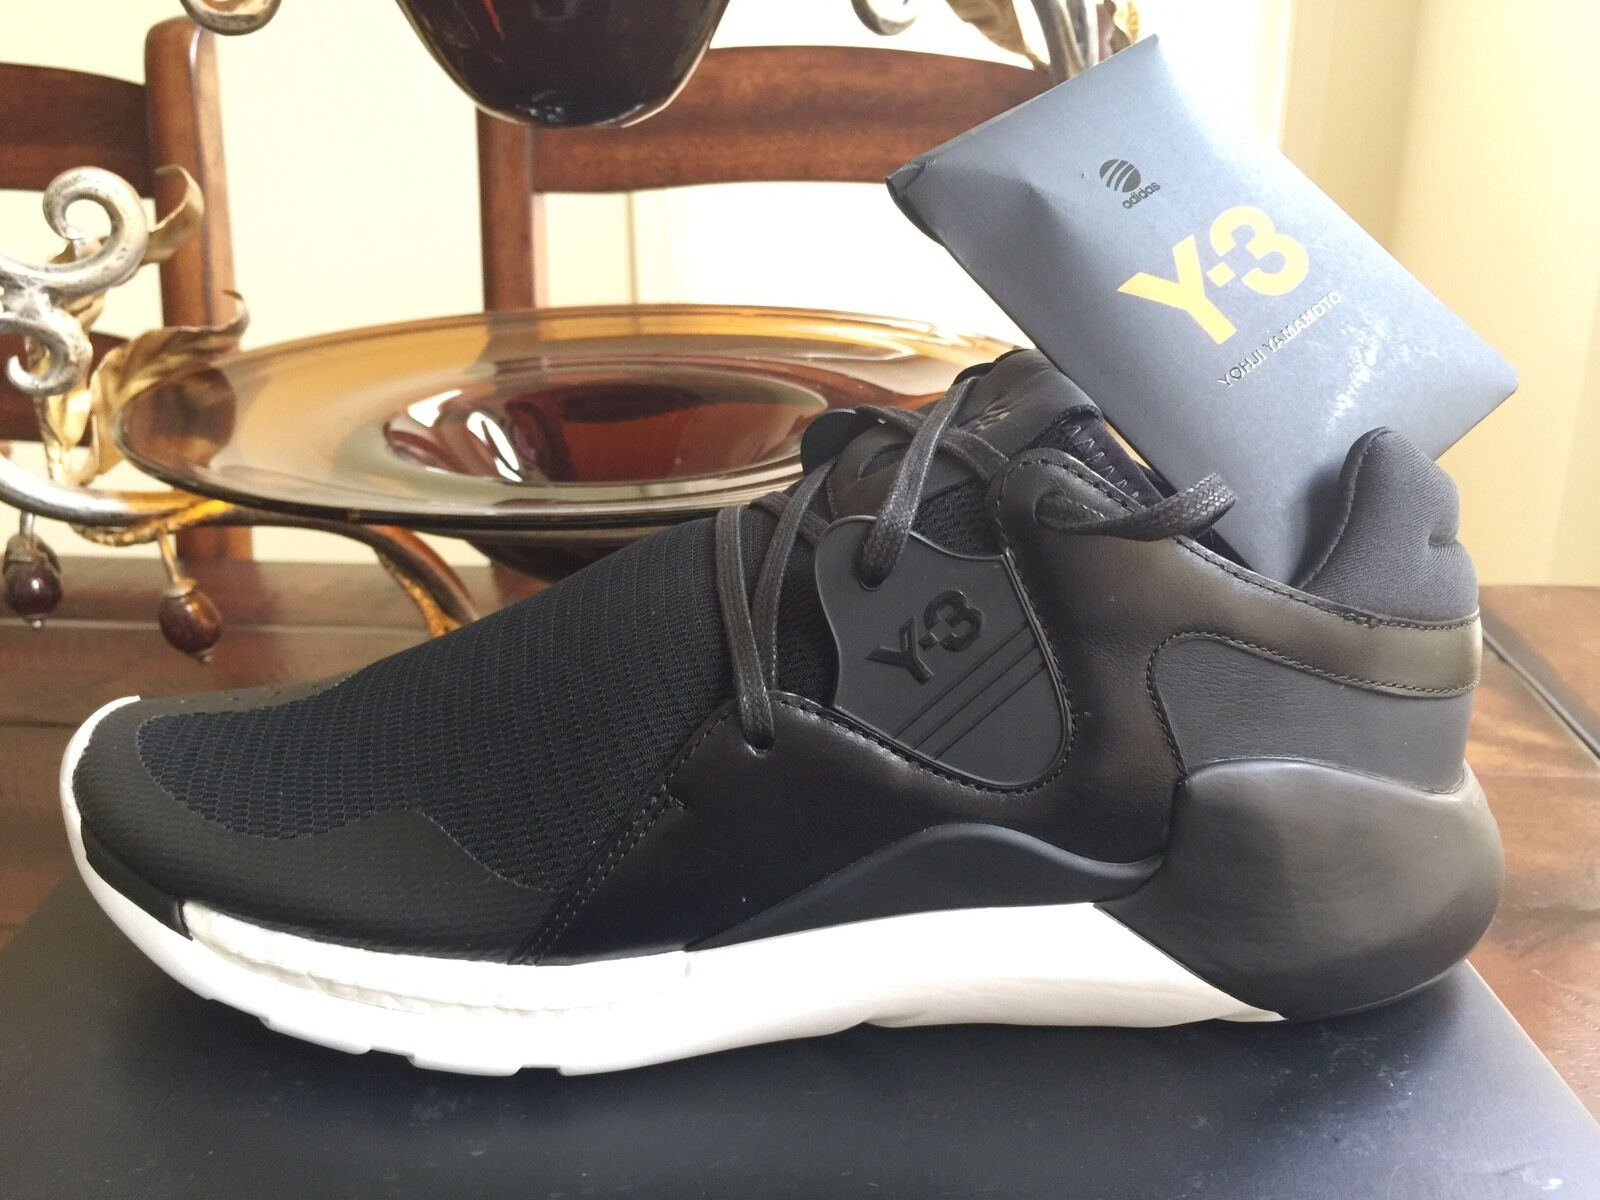 NEW MEN Y-3 ADIDAS 'QR RUN' BOOST HIGH TOP SNEAKERS SHOES US 9.5 100% AUTHENTIC